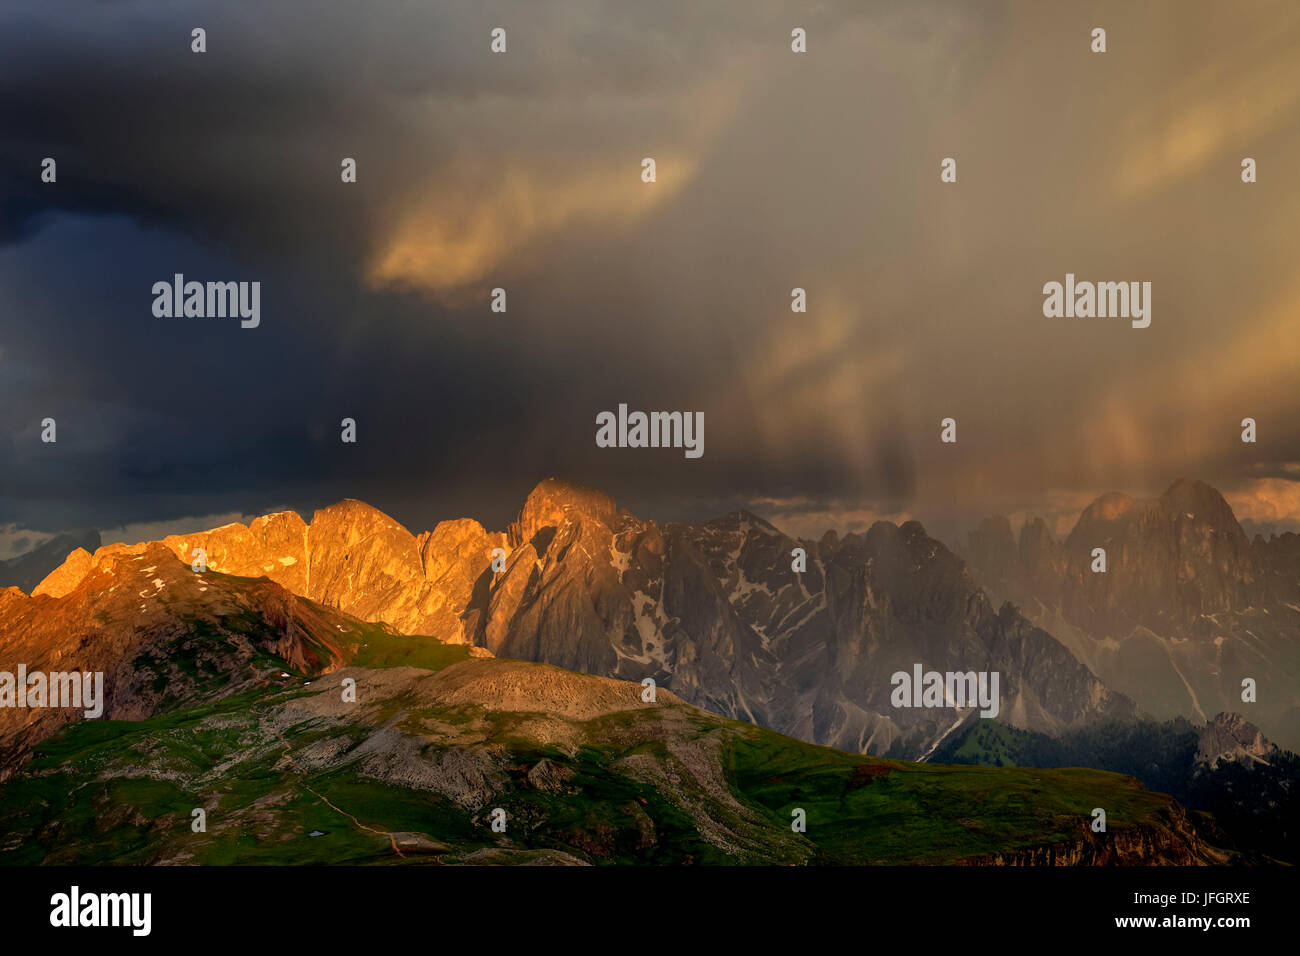 Italy, region Trentino South Tirol, province Bolzano, the Dolomites, to Schlern, thunderstorm about the pert electrolytic - Stock Image